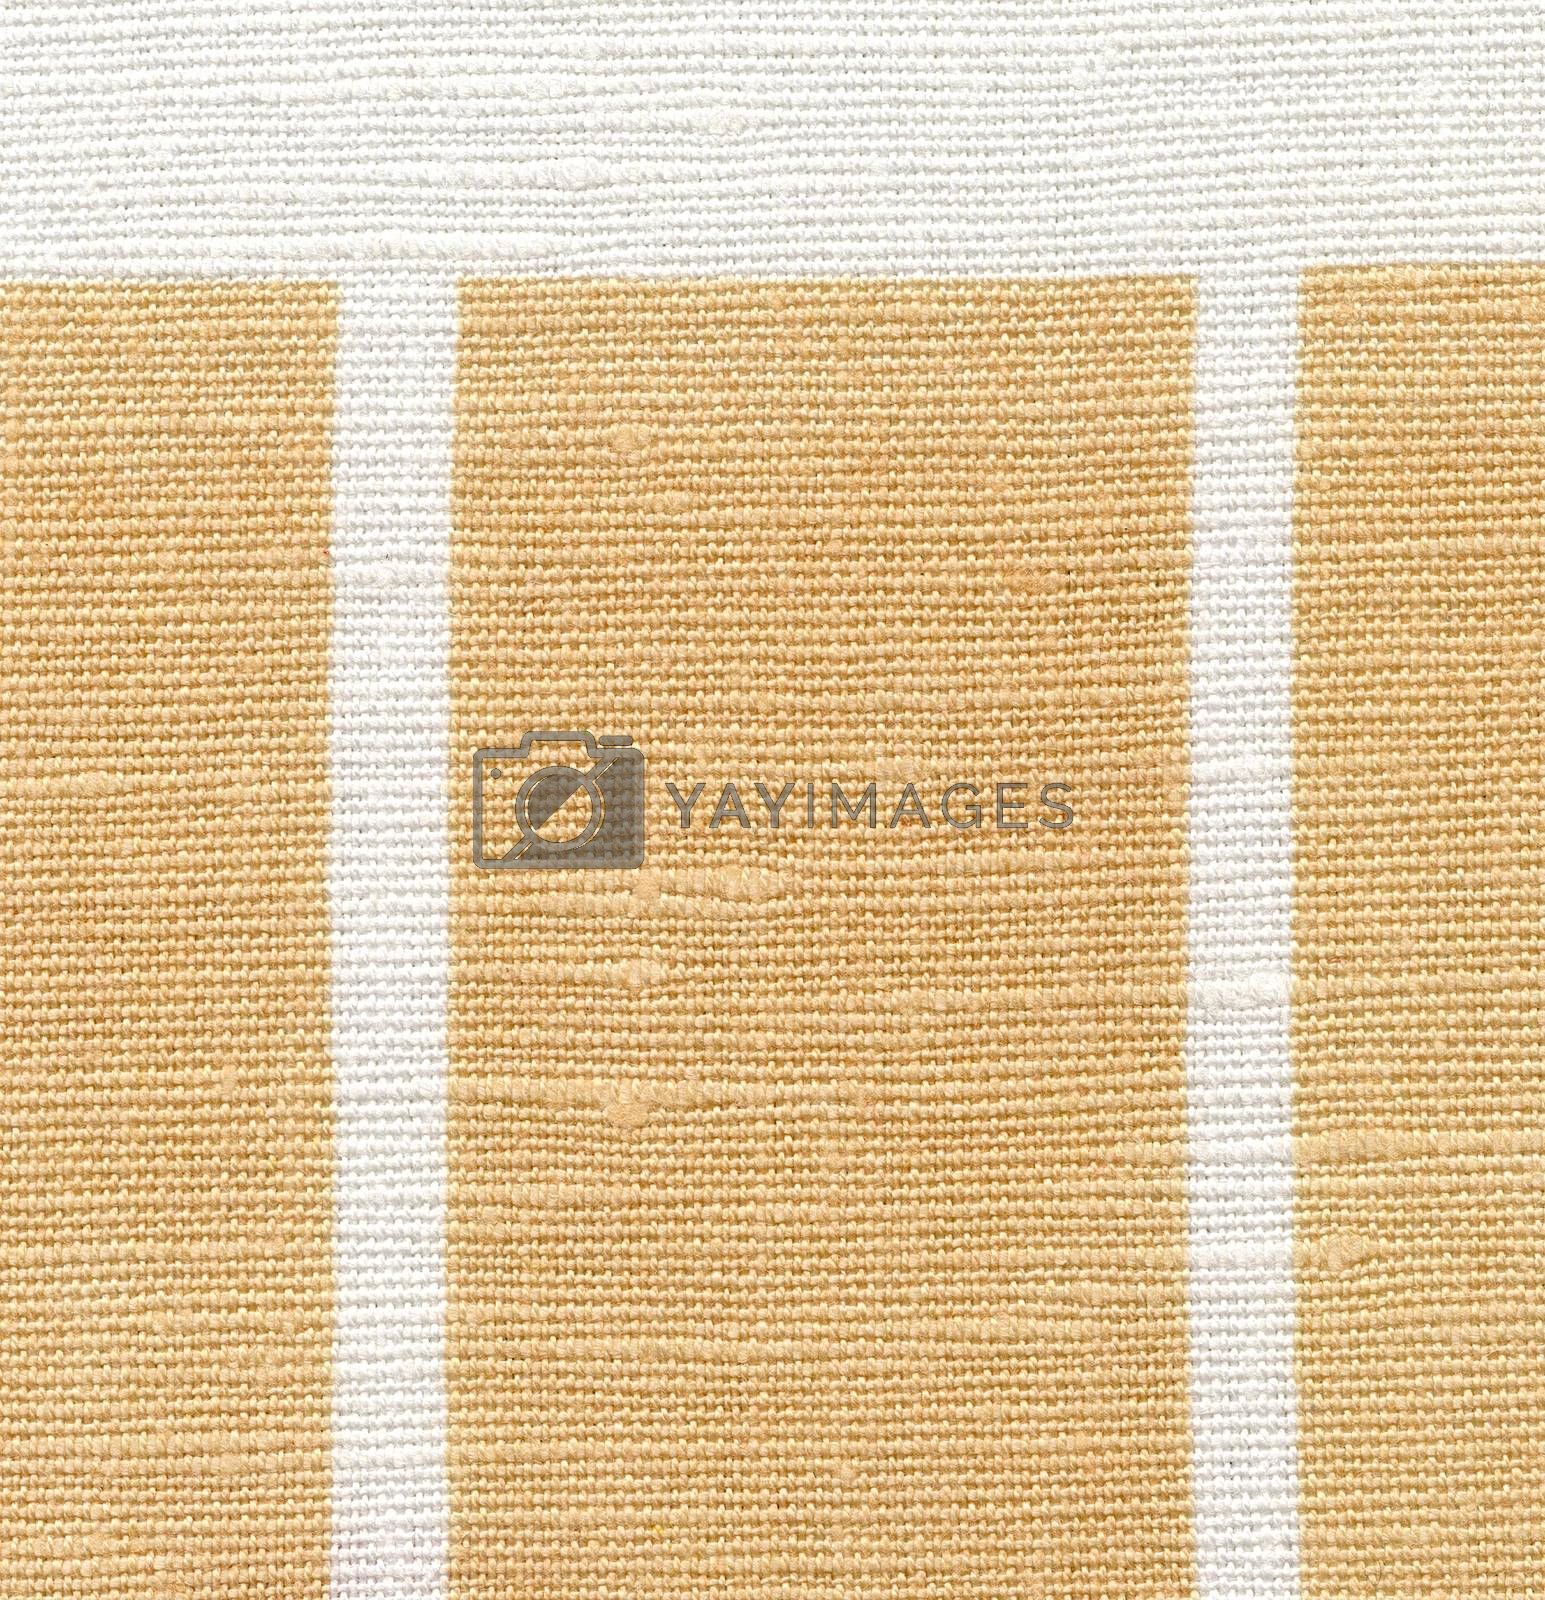 Canvas texture, white and beige with strips